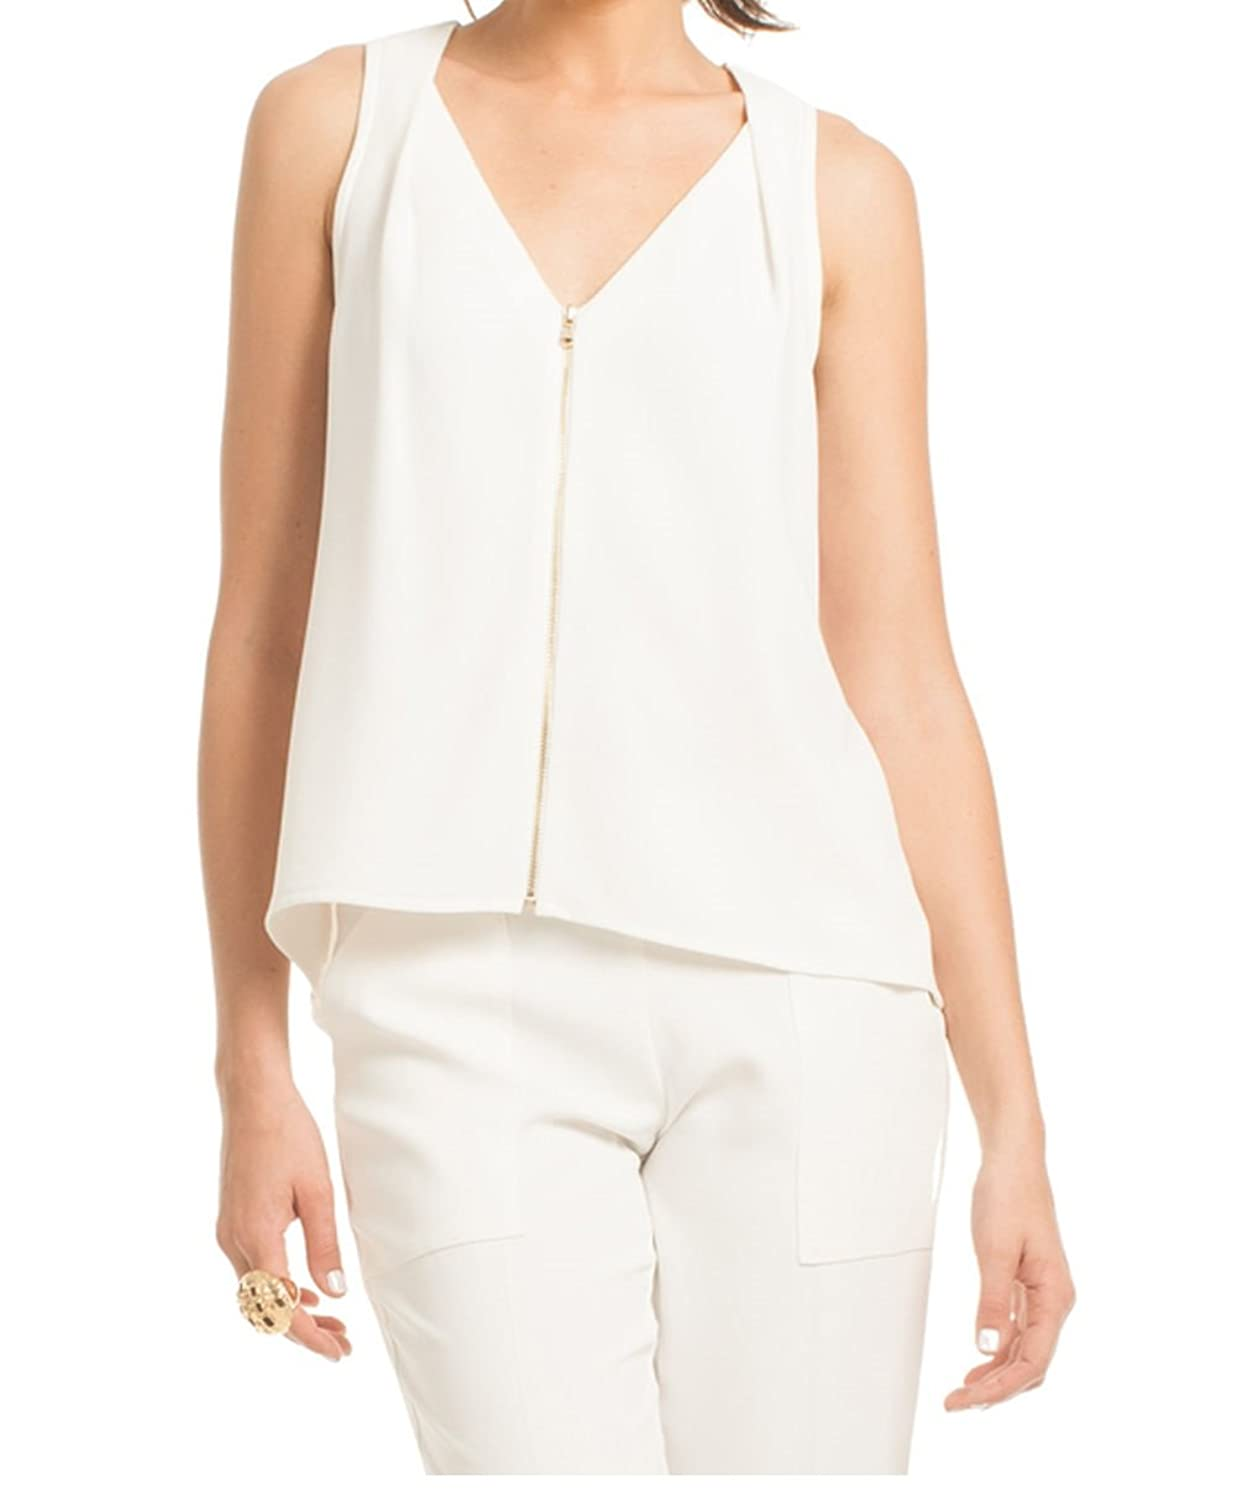 Trina Turk Women's Sleeveless Exposed Front Zip Banning Top Ivory Size Large